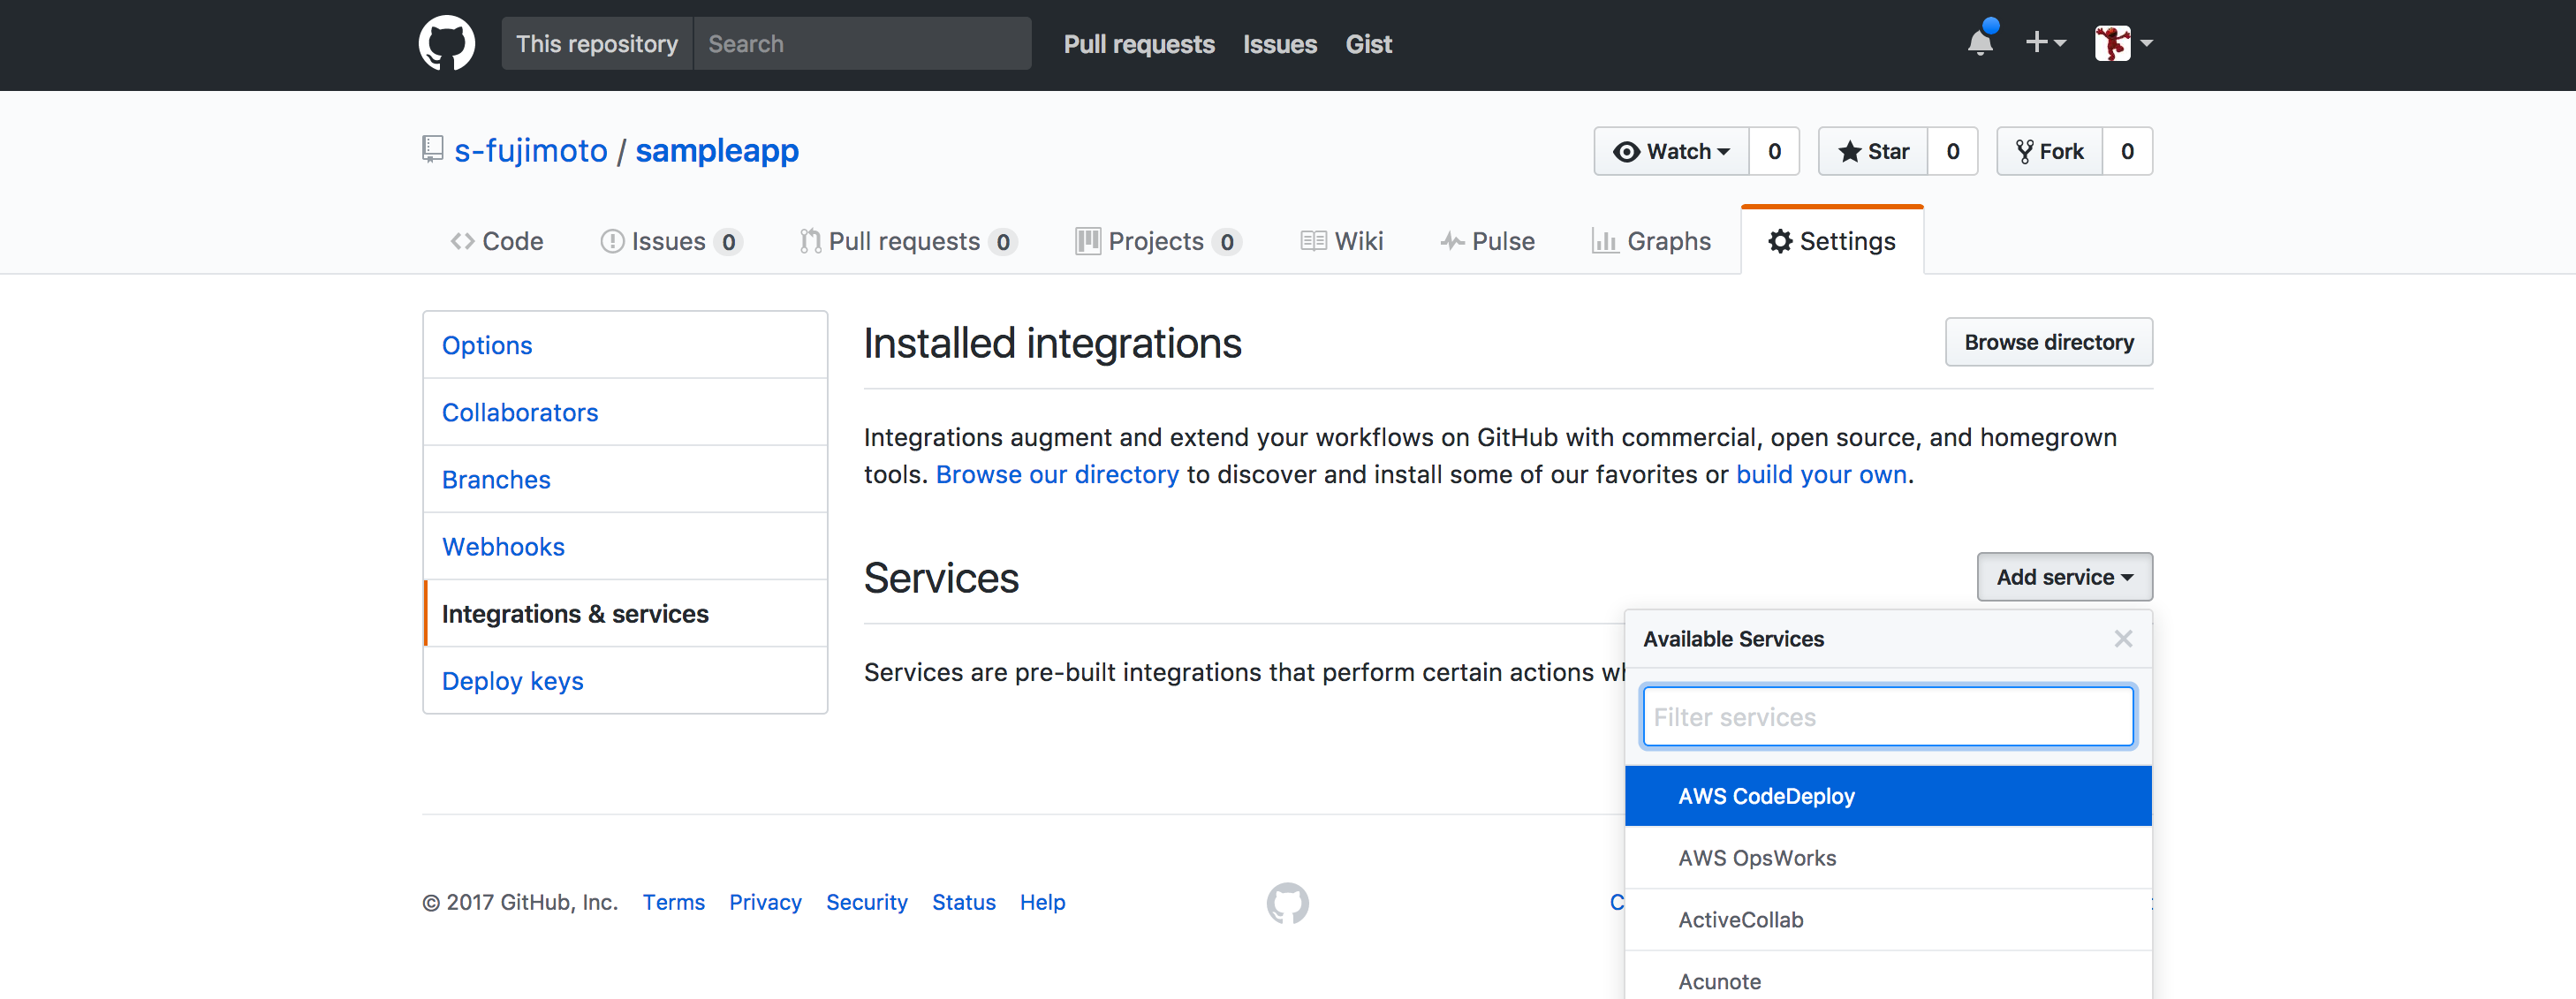 Integrations_and_services